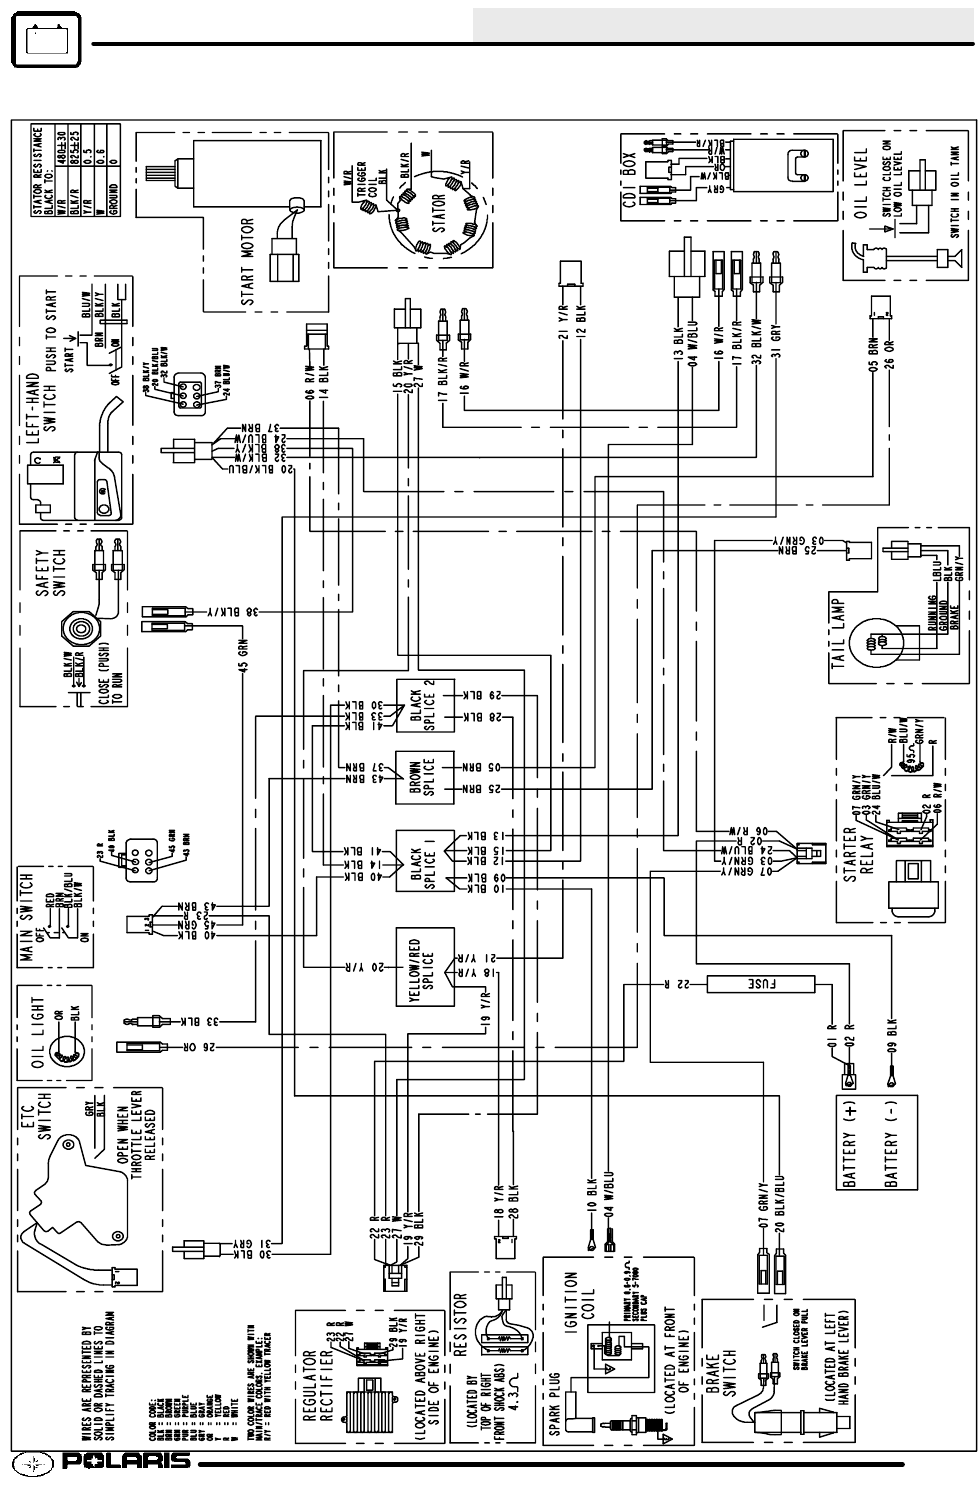 2001 Polaris Sportsman 90 Wiring Diagram  Somurich